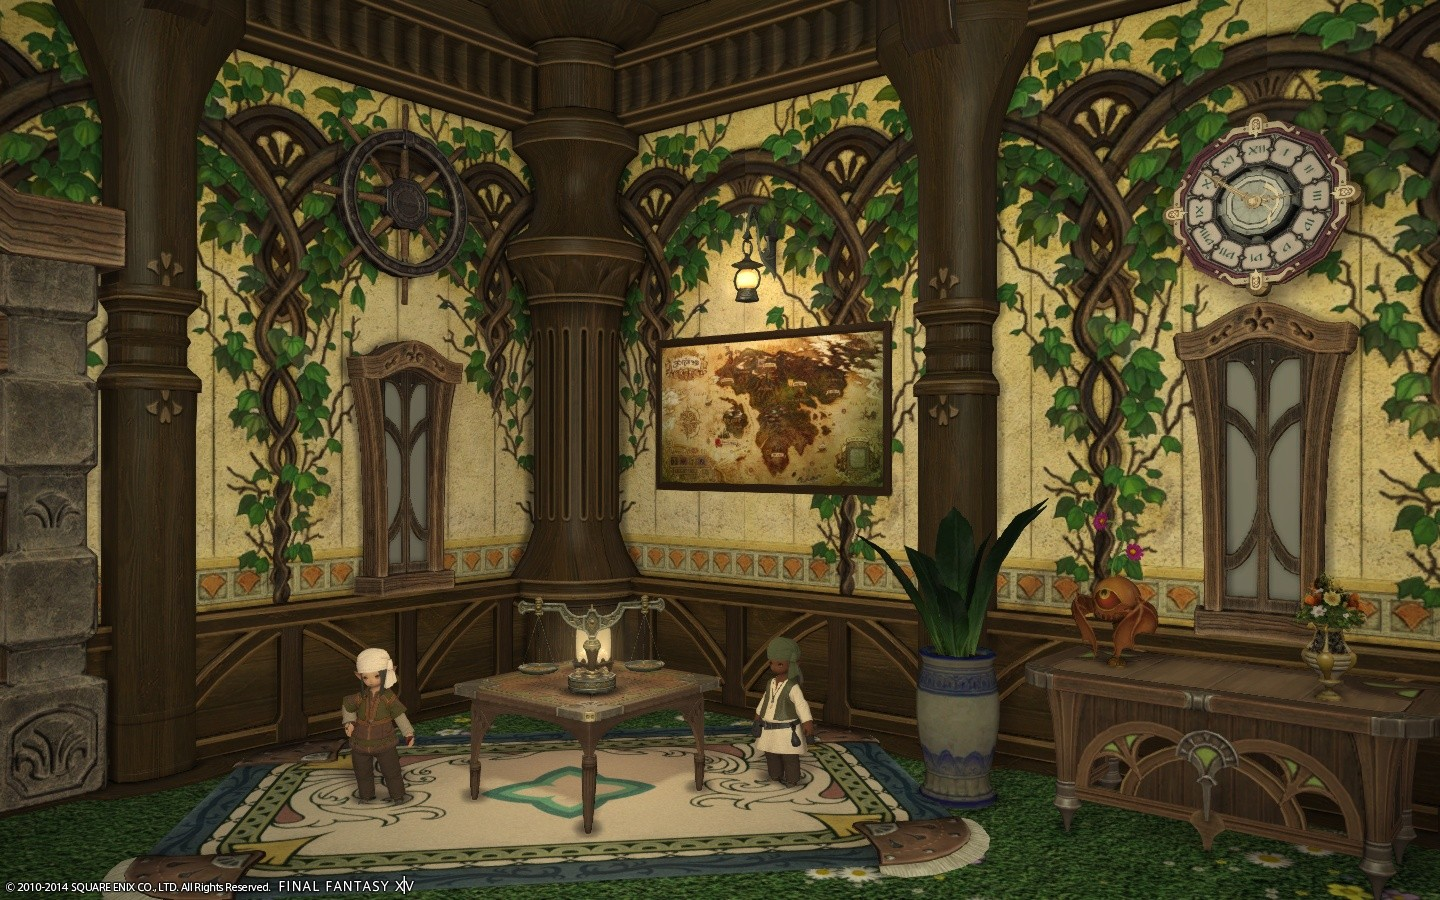 Final Fantasy XIV: A Realm Reborn - My House (with merchants)